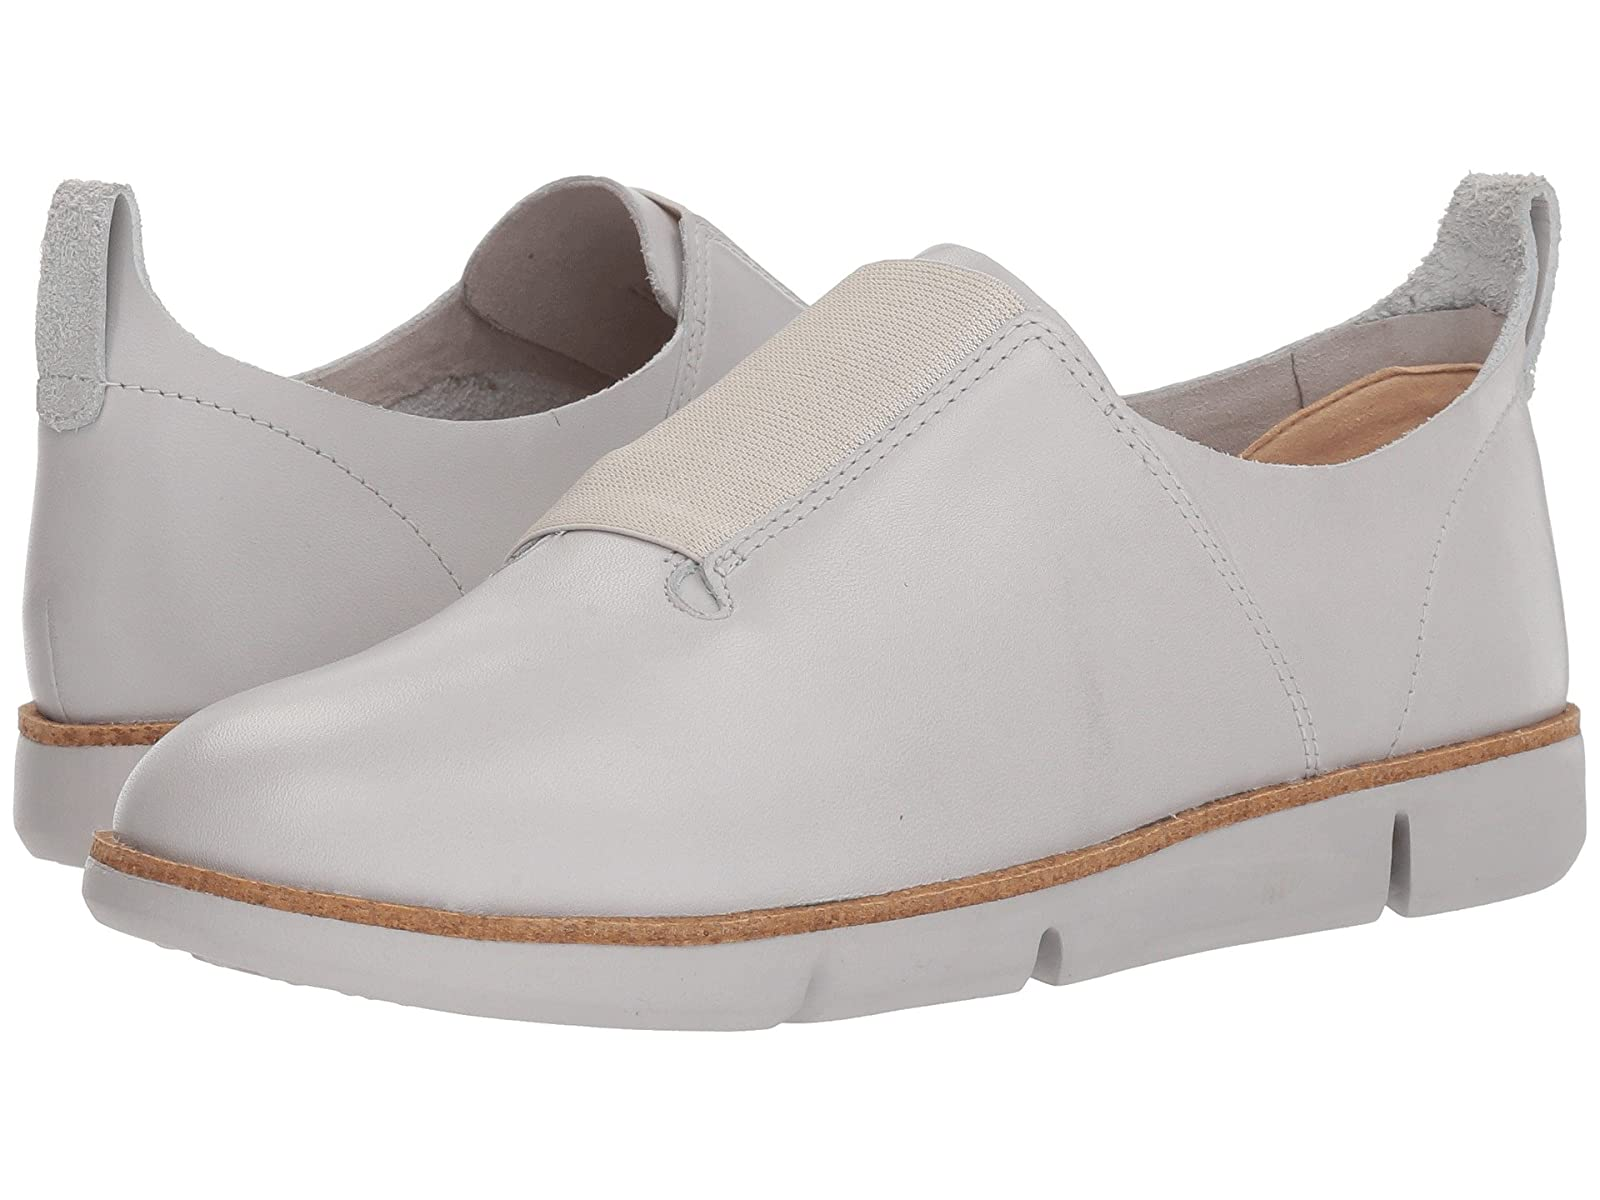 Clarks Tri FormCheap and distinctive eye-catching shoes